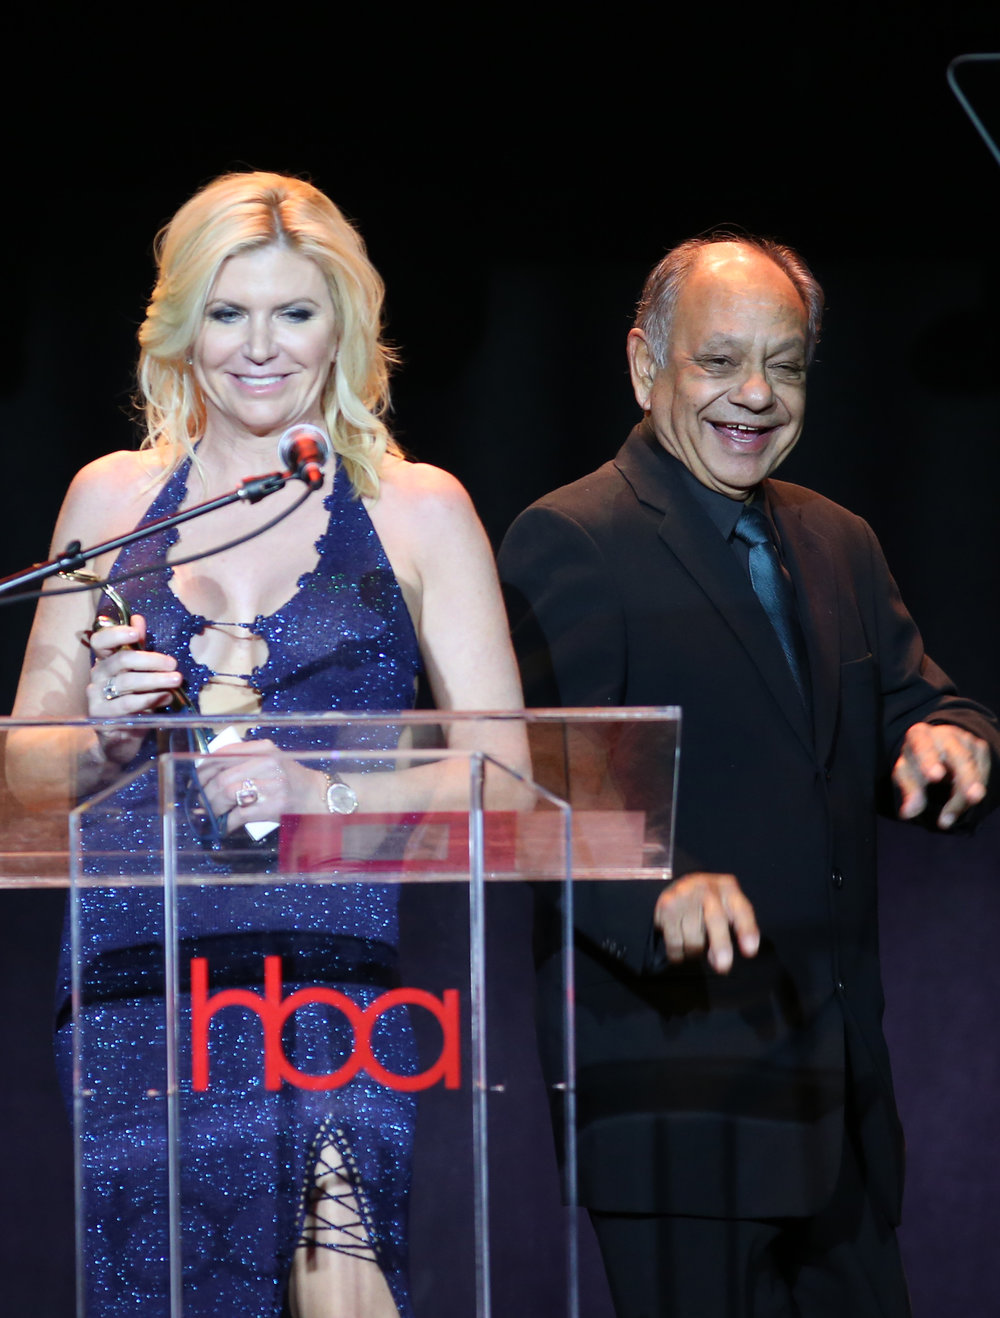 Beth Stavola and Cheech Marin  | Feb 25, 2018, Hollywood Beauty Awards held at the Avalon